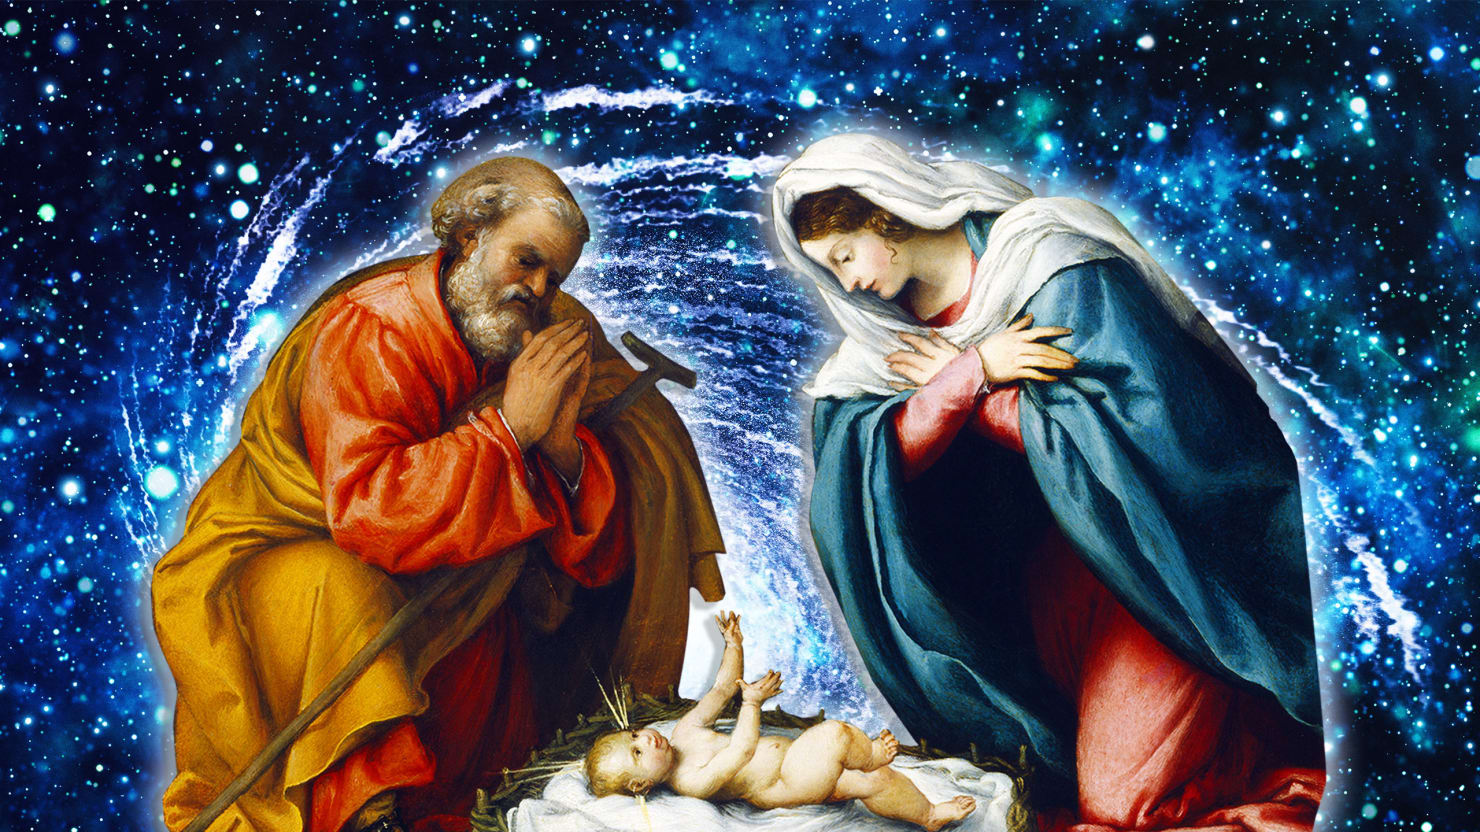 Jesus being born pictures